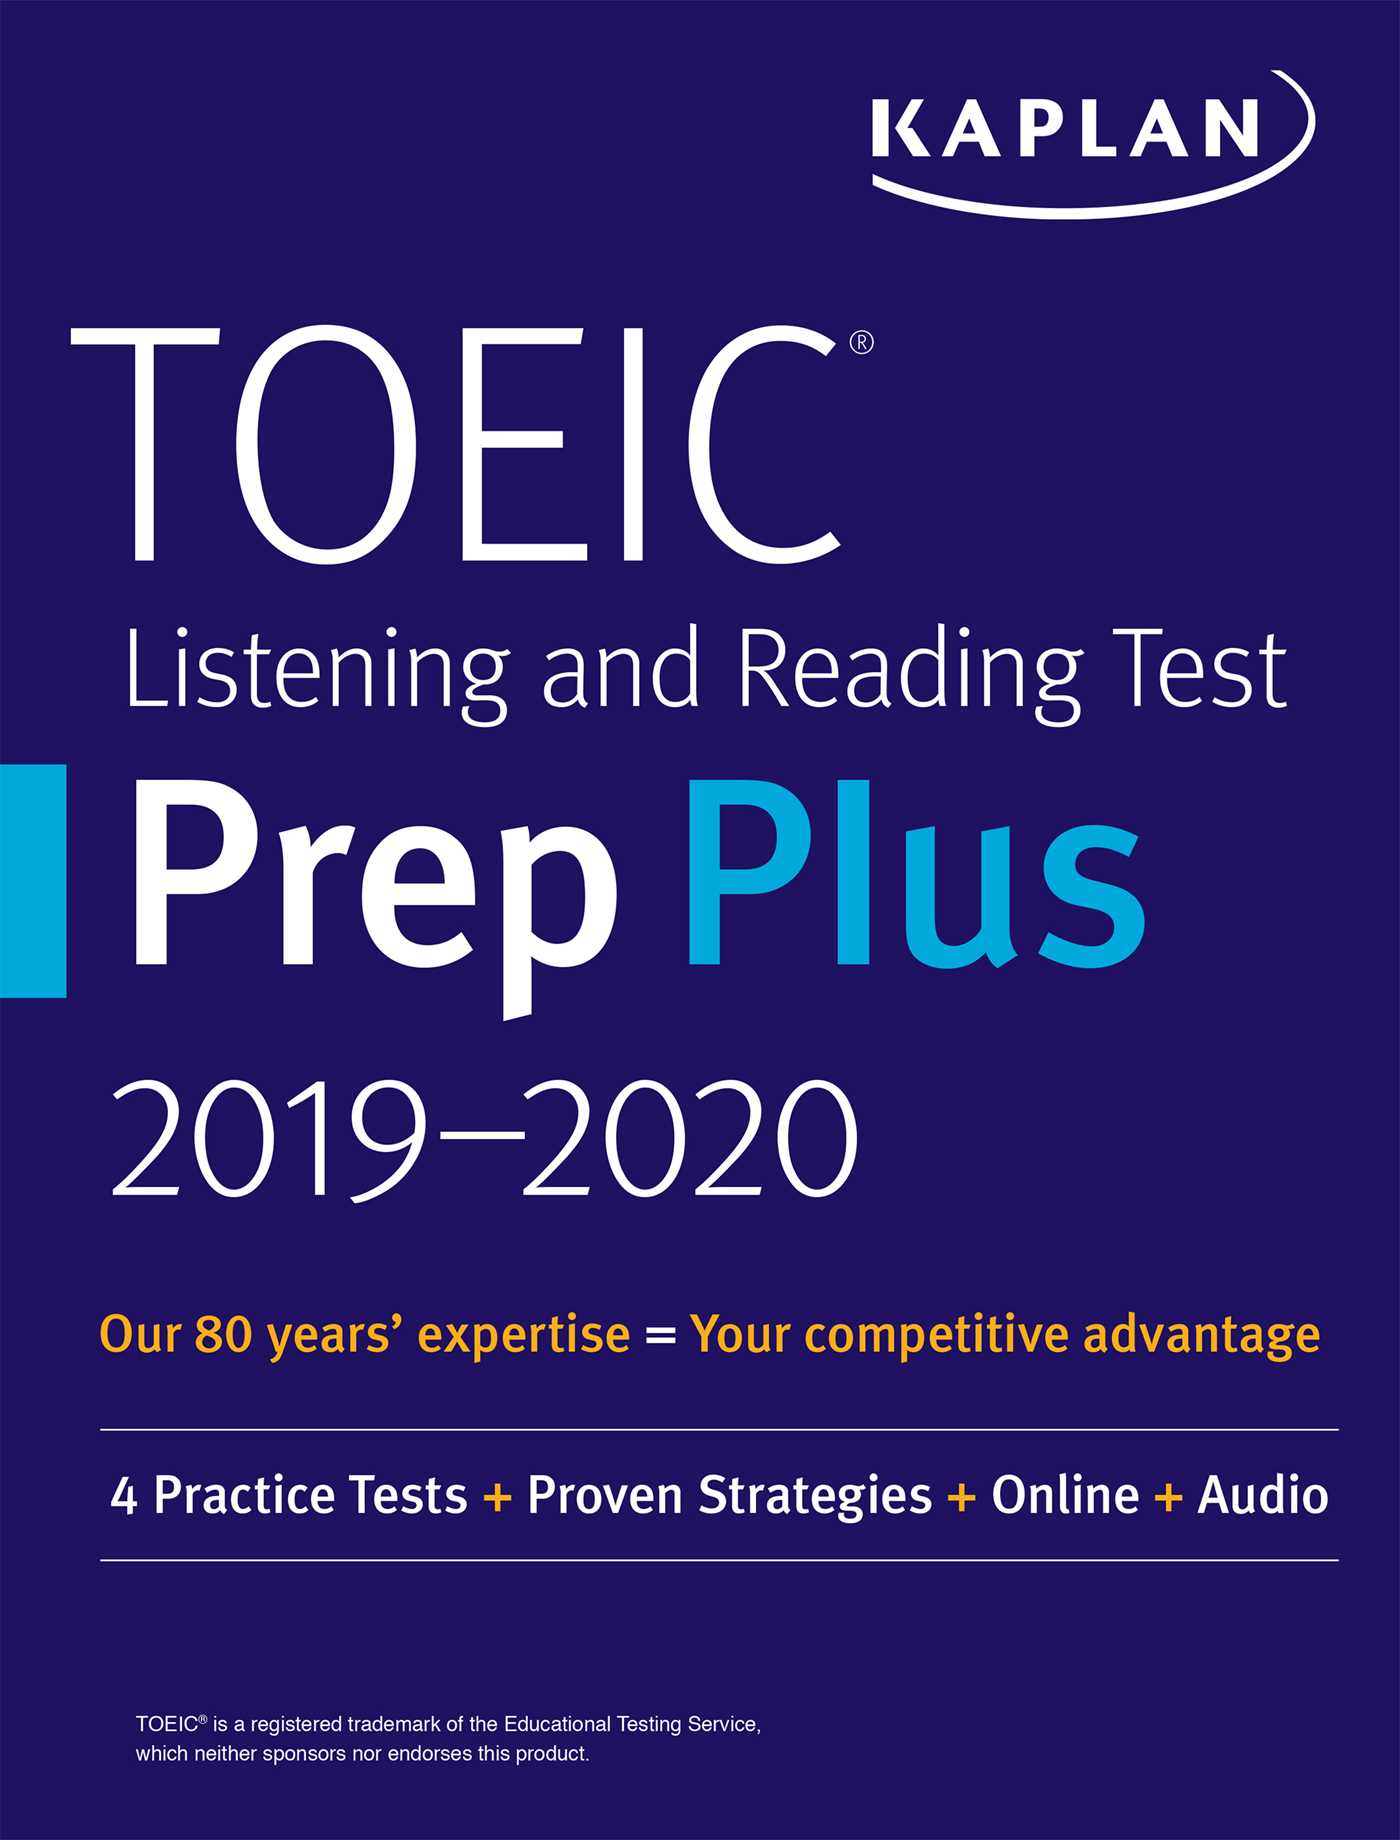 Toeic listening and reading test prep plus 2019 2020 9781506238654 hr